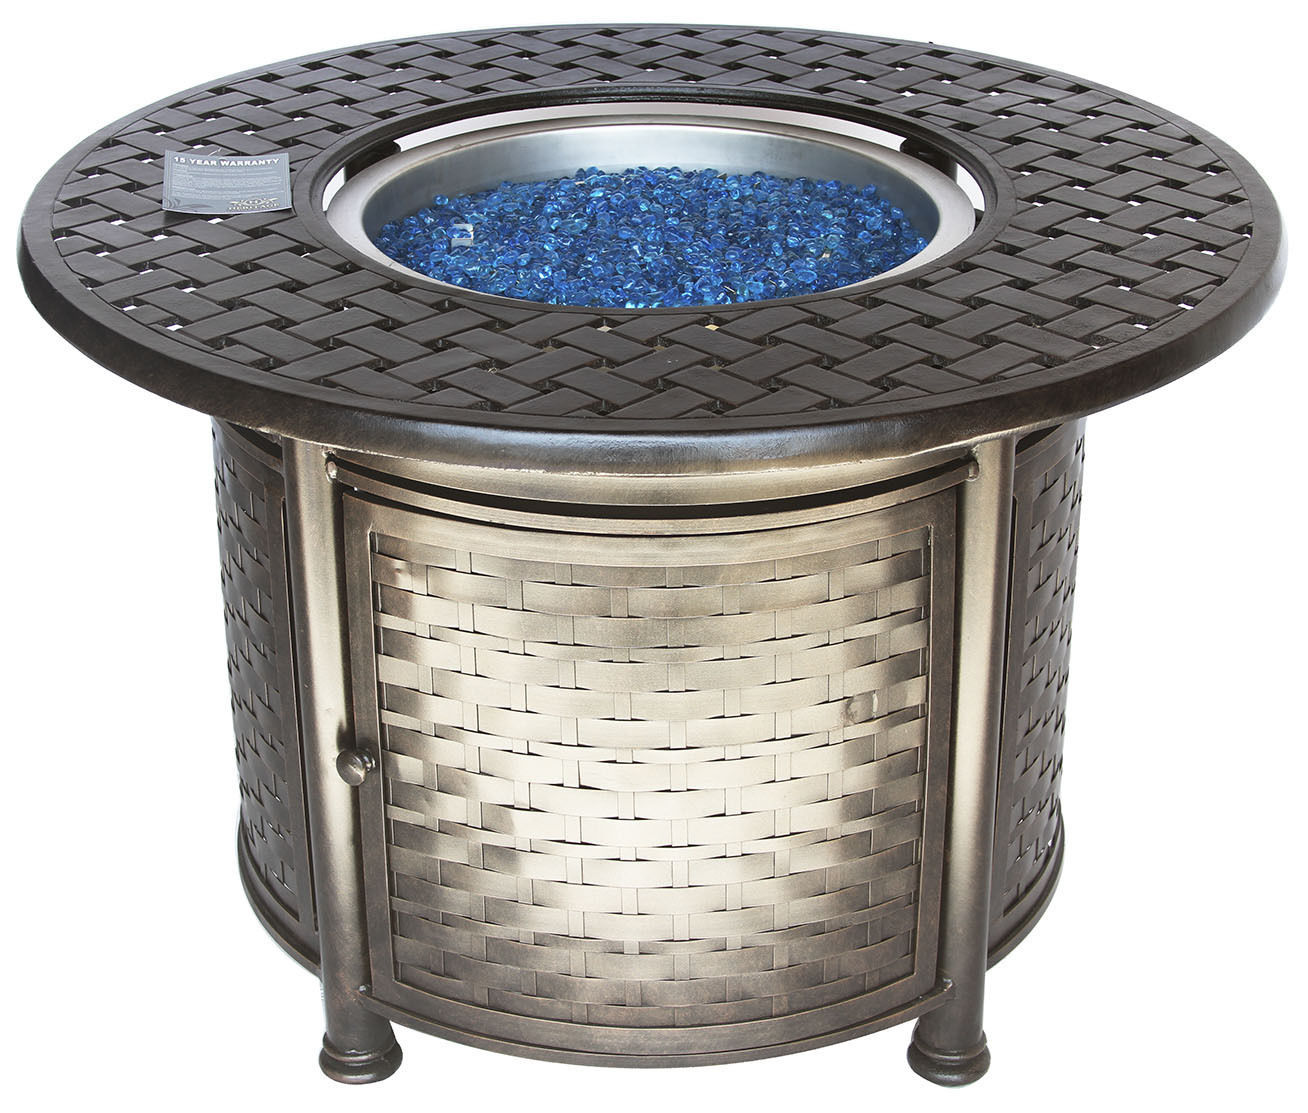 "OUTDOOR PATIO 42"" ROUND DINING FIRE TABLE - SERIES 7000"